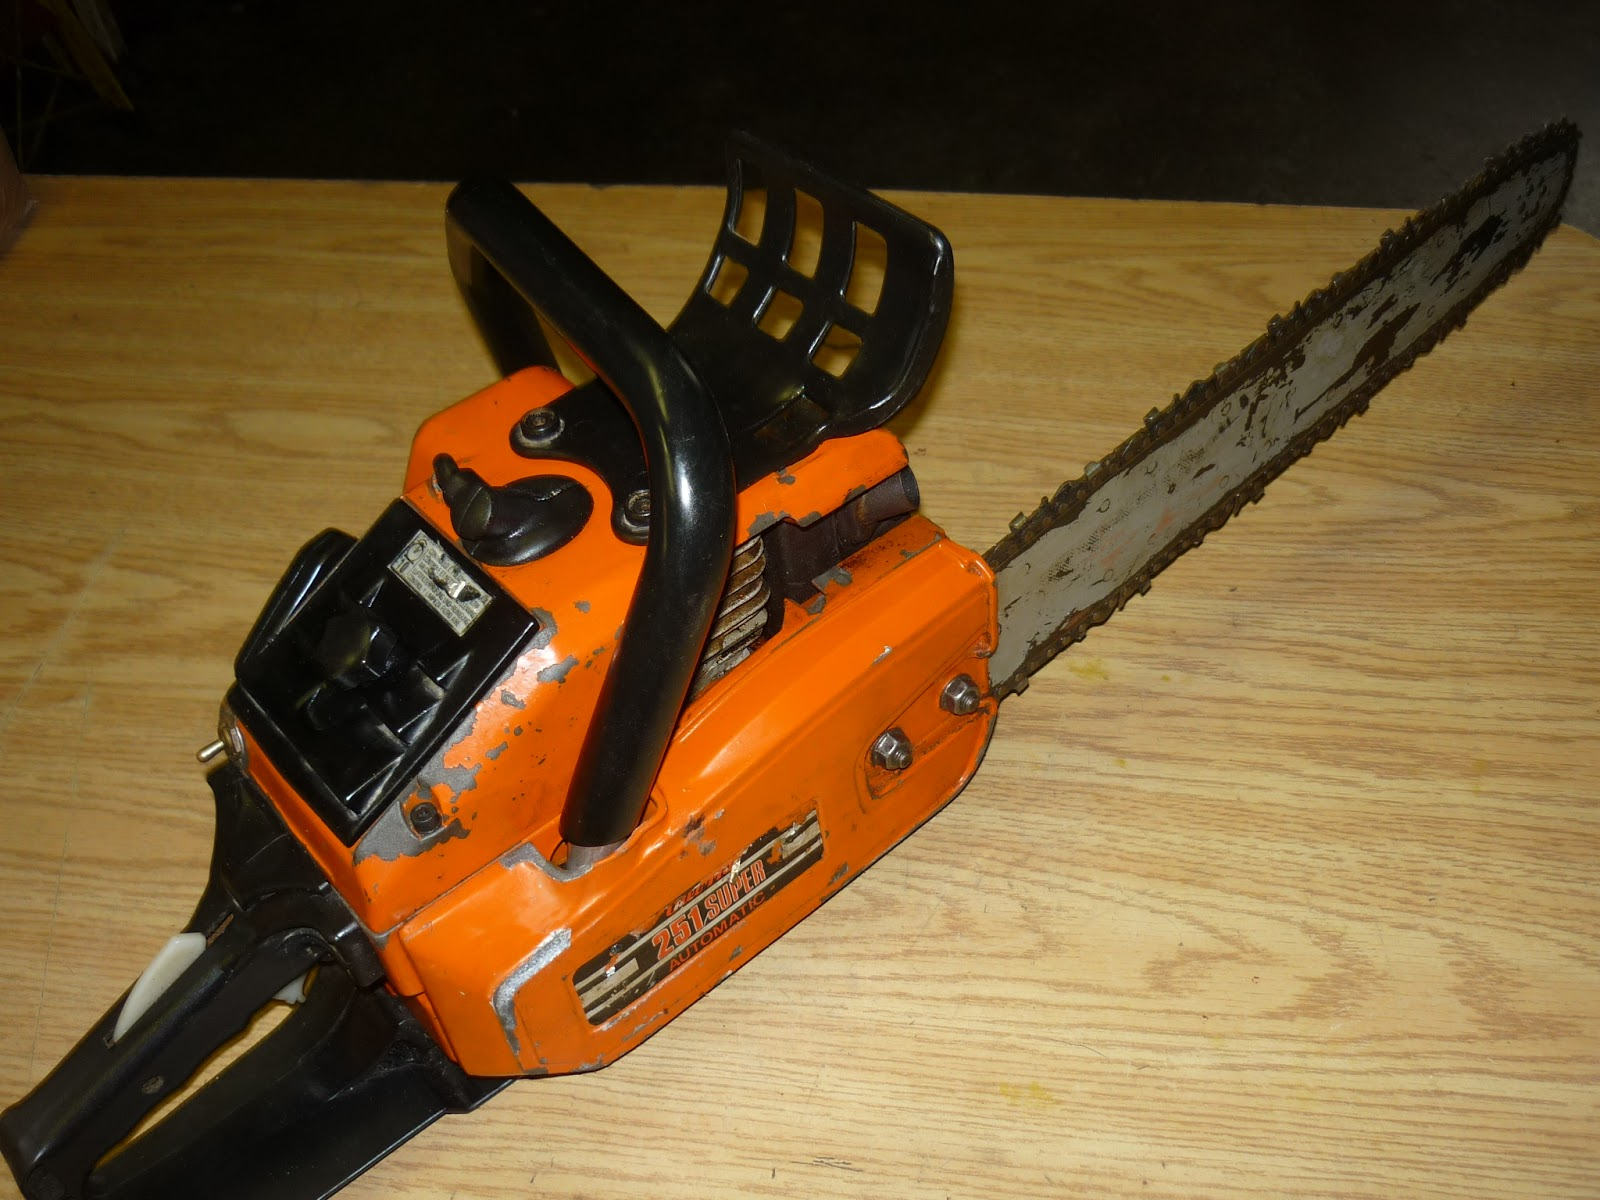 VINTAGE CHAINSAW COLLECTION: OLYMPIC OLEO MAC SUPER 250 A